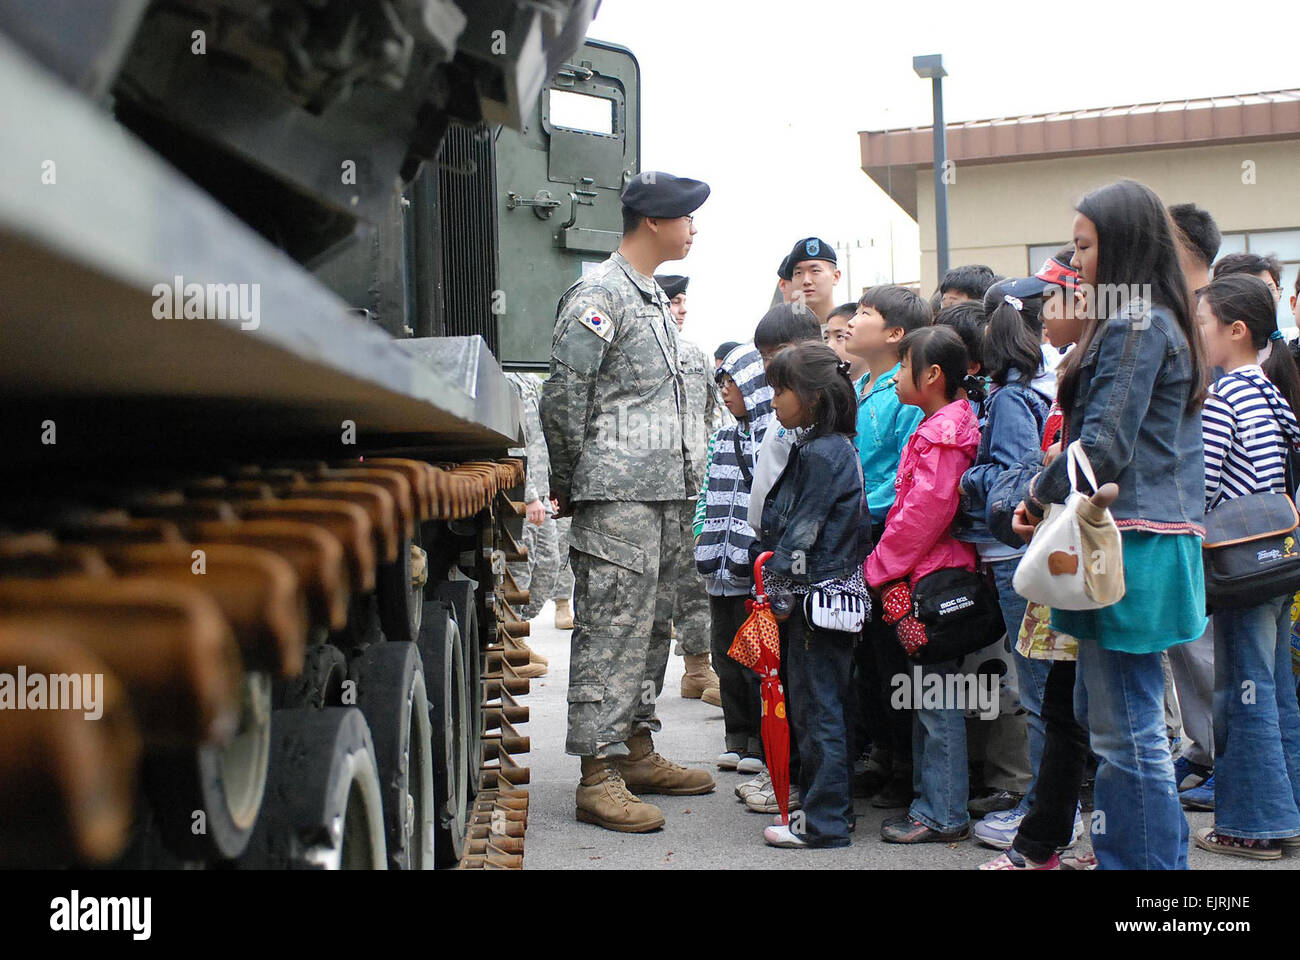 Cpl. Lee, Eui Jong, Co. B., 6th Bn., 37th FA, explains to Wangnam Elementary School students what an MLRS is and - Stock Image